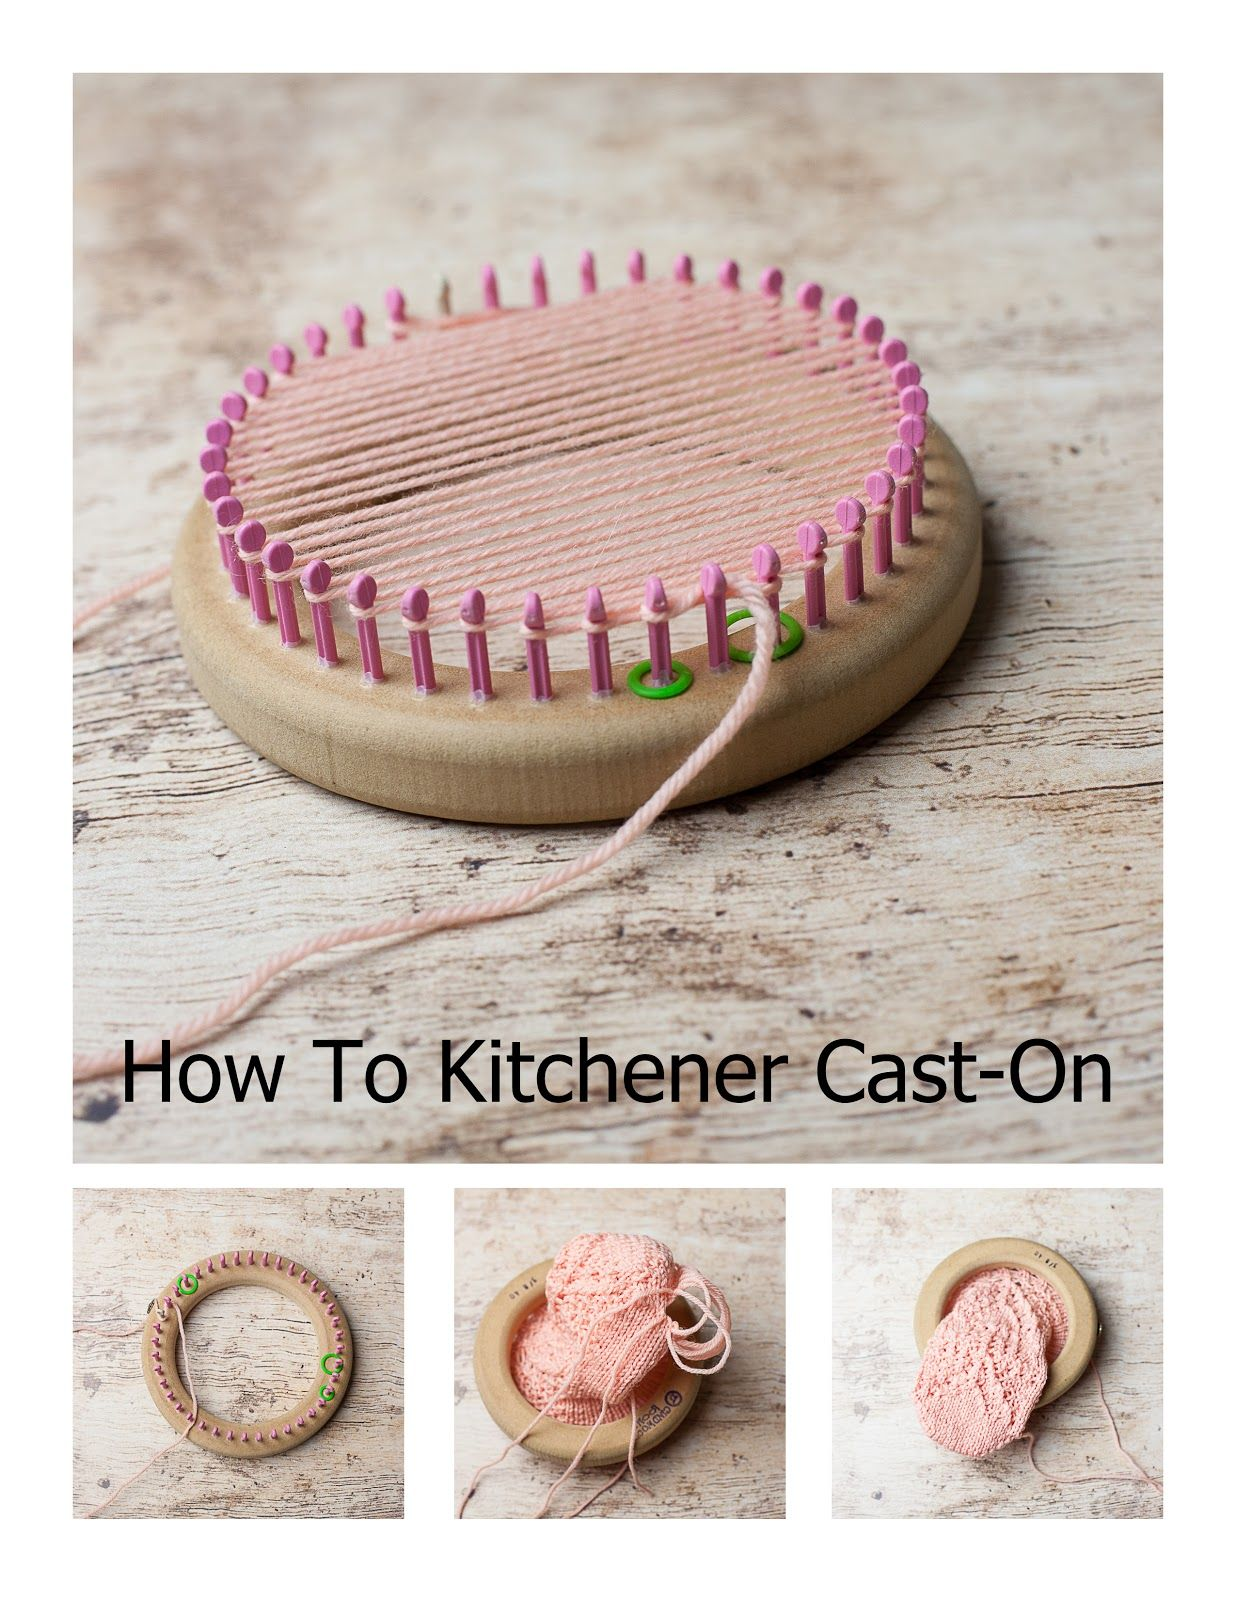 How To Kitchener Cast-On The Loom! #loomknitting